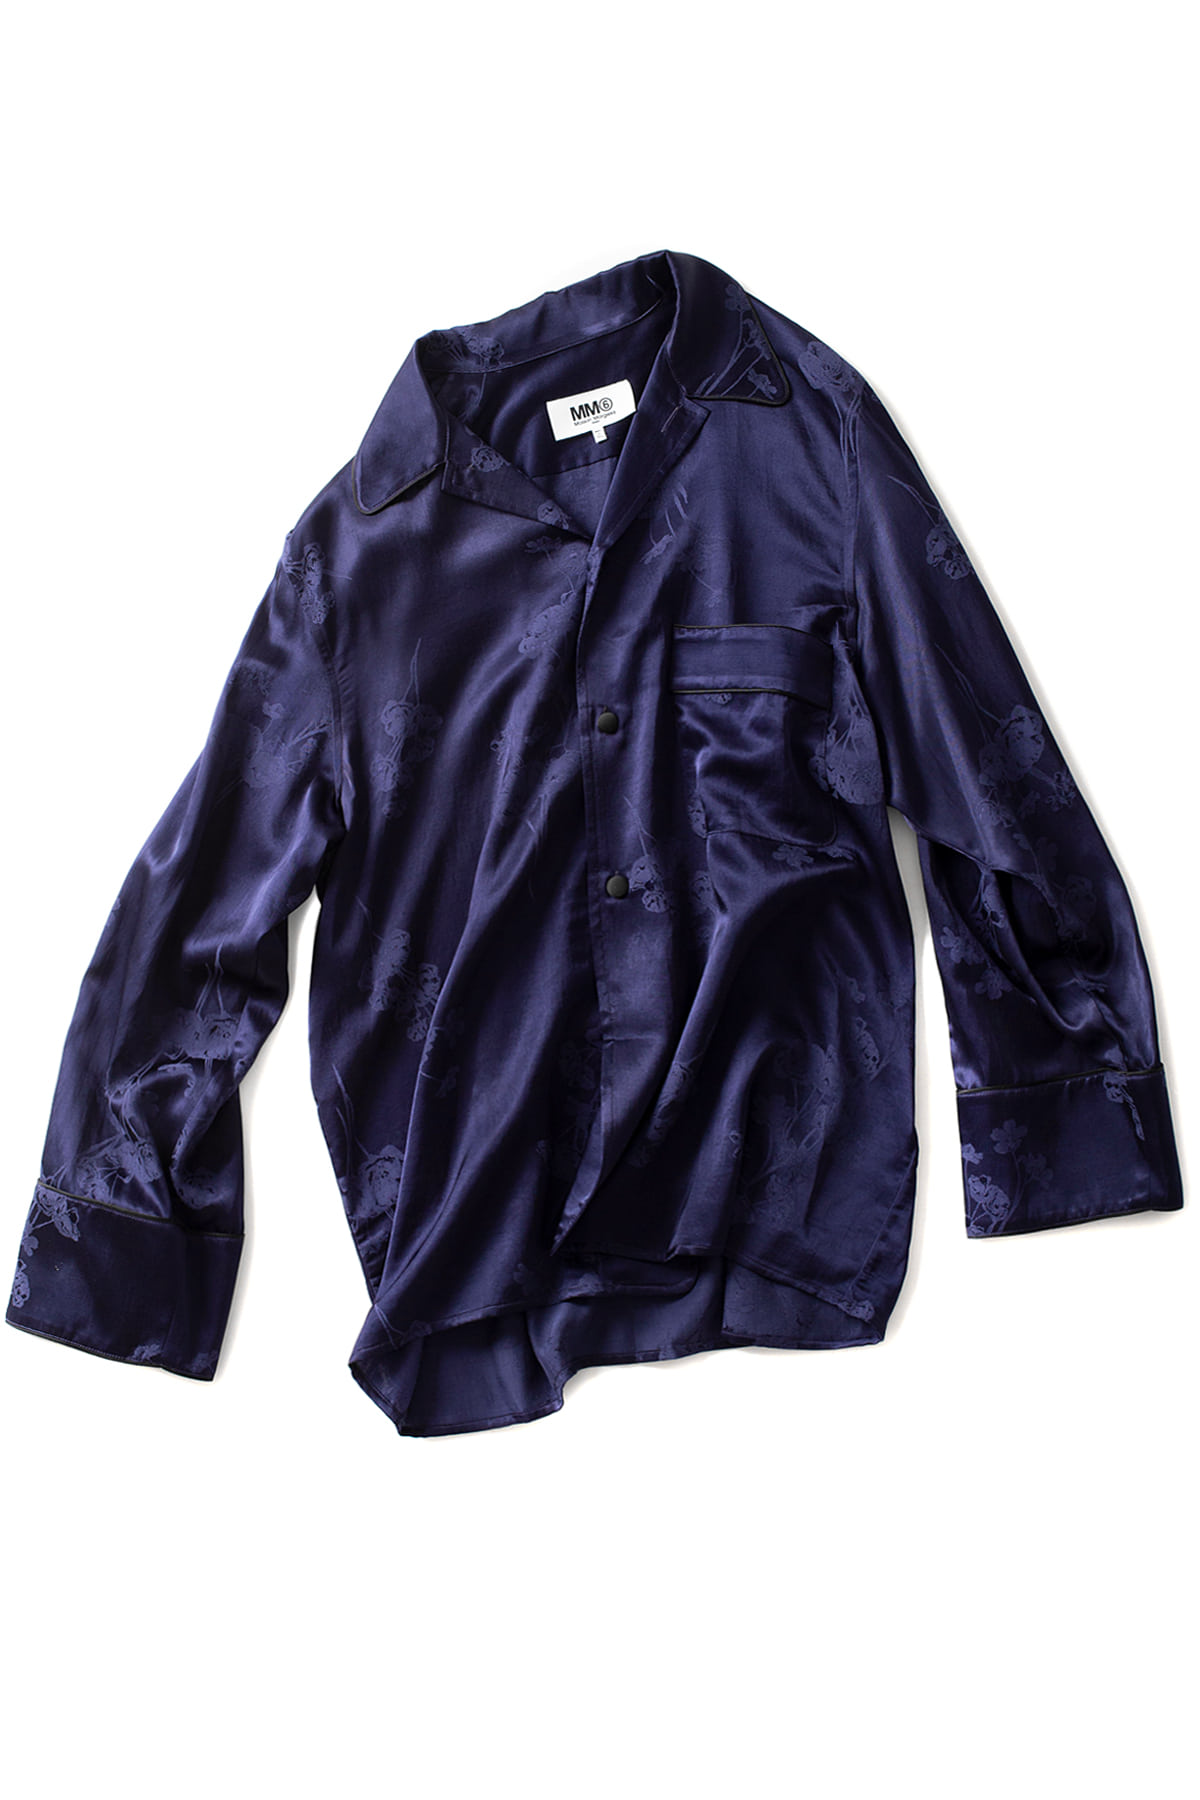 MM6 Maison Margiela : Oversized Jacquard Pajama Shirt (Navy)